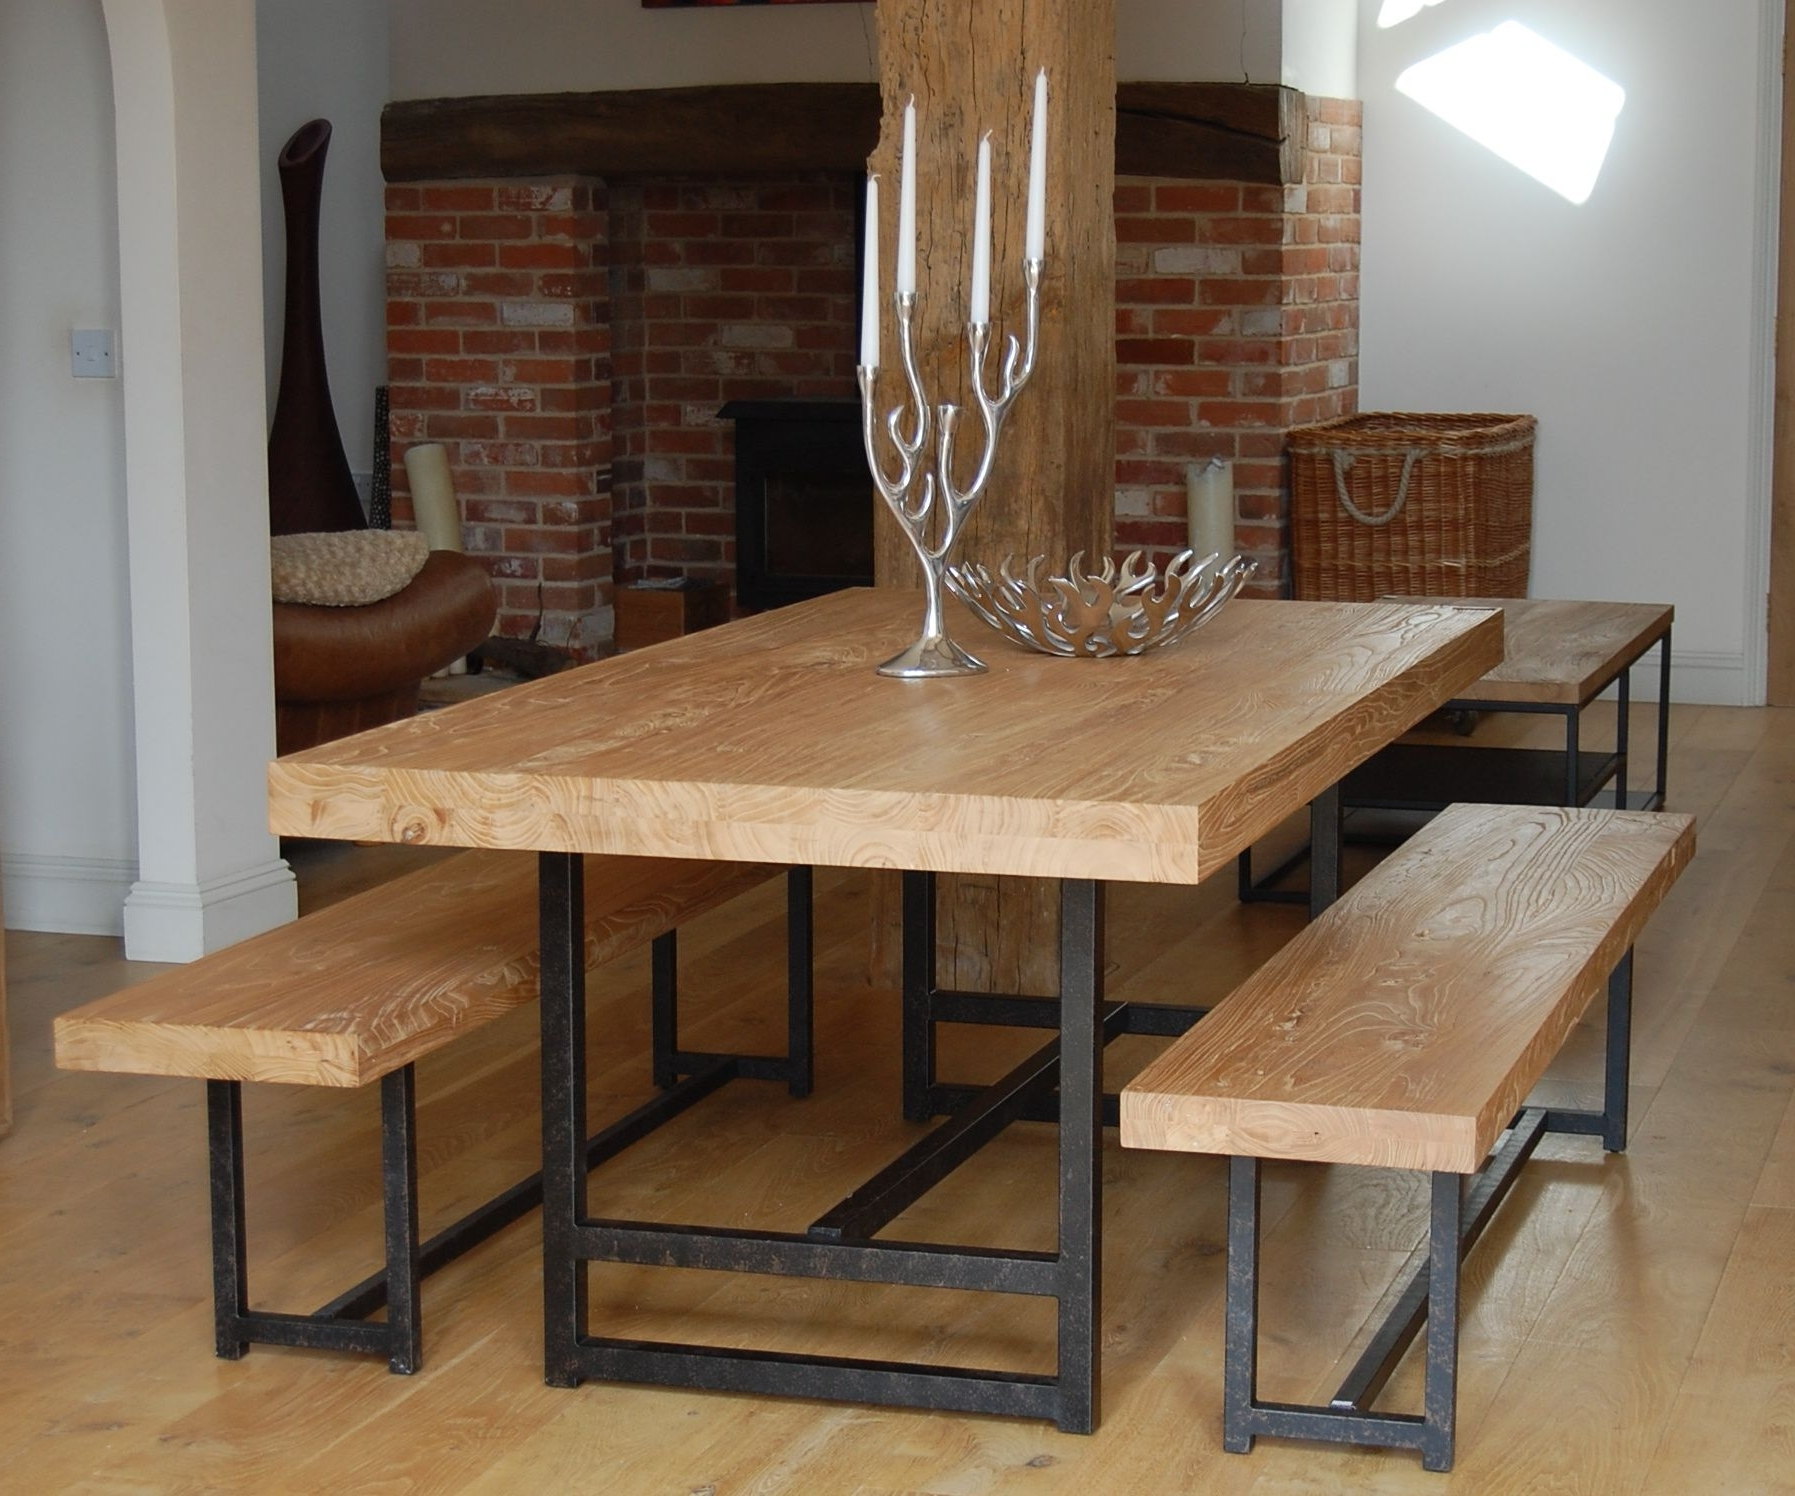 Fashionable Comely Dining Room Bench With Back Within The Perfect Awesome Dining Regarding Bench With Back For Dining Tables (View 8 of 25)